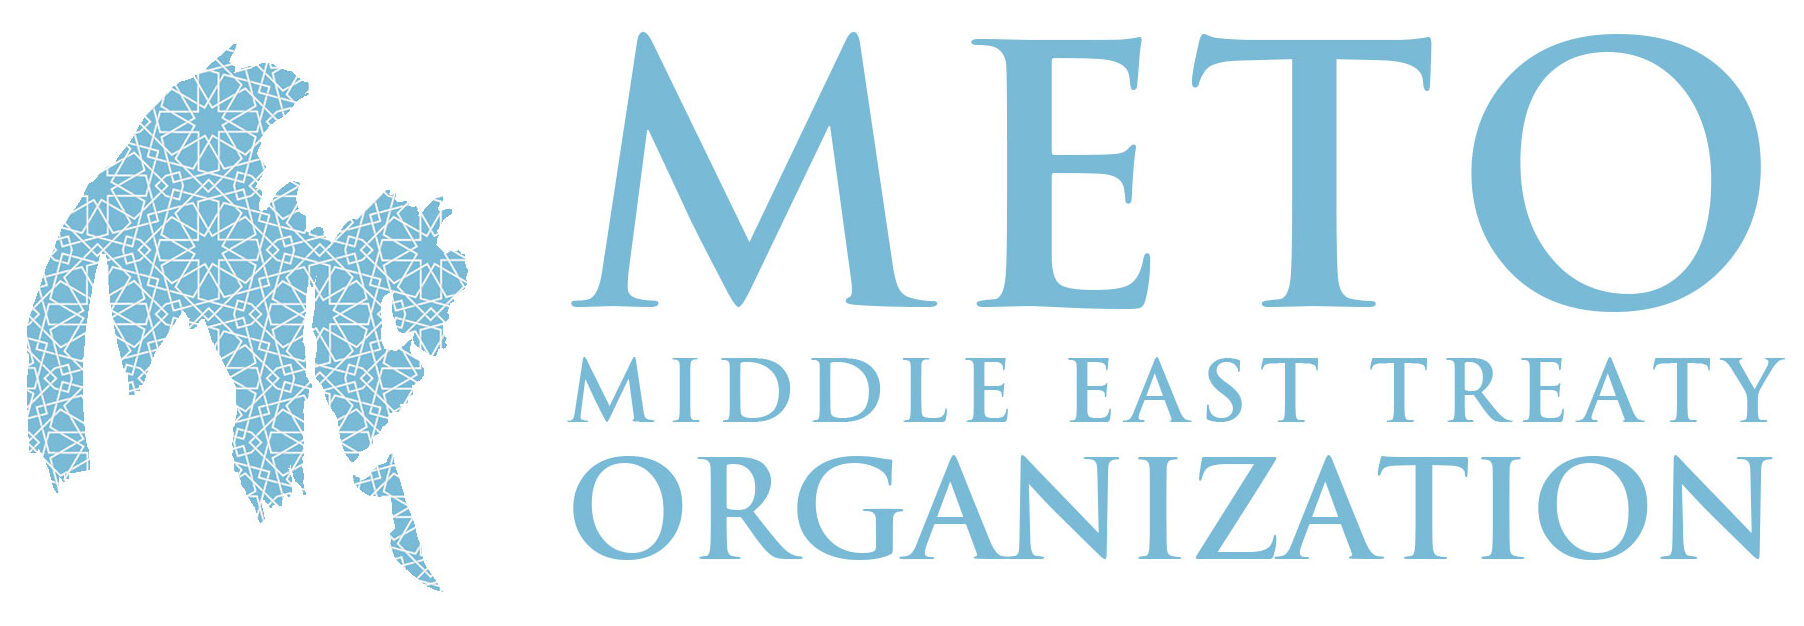 Middle East Treaty Organization